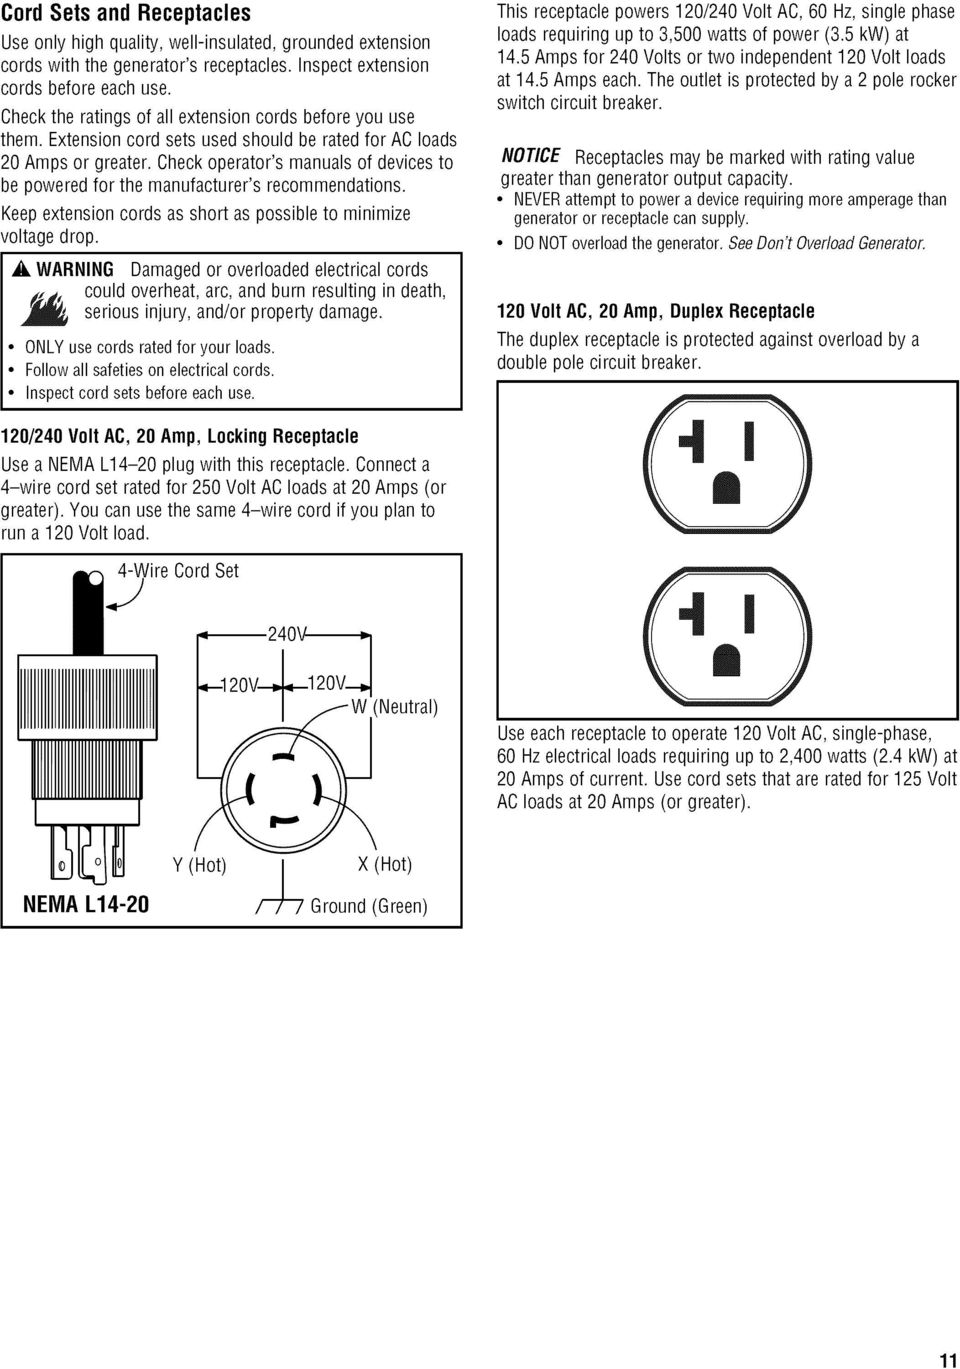 Portablegenerator Operatorsmanual Pdf L14 20 Plug Wiring Diagram 240v Checkoperators Manuals Of Devices To Be Powered For The Manufacturers Recommendations Keepextension Cords As Short